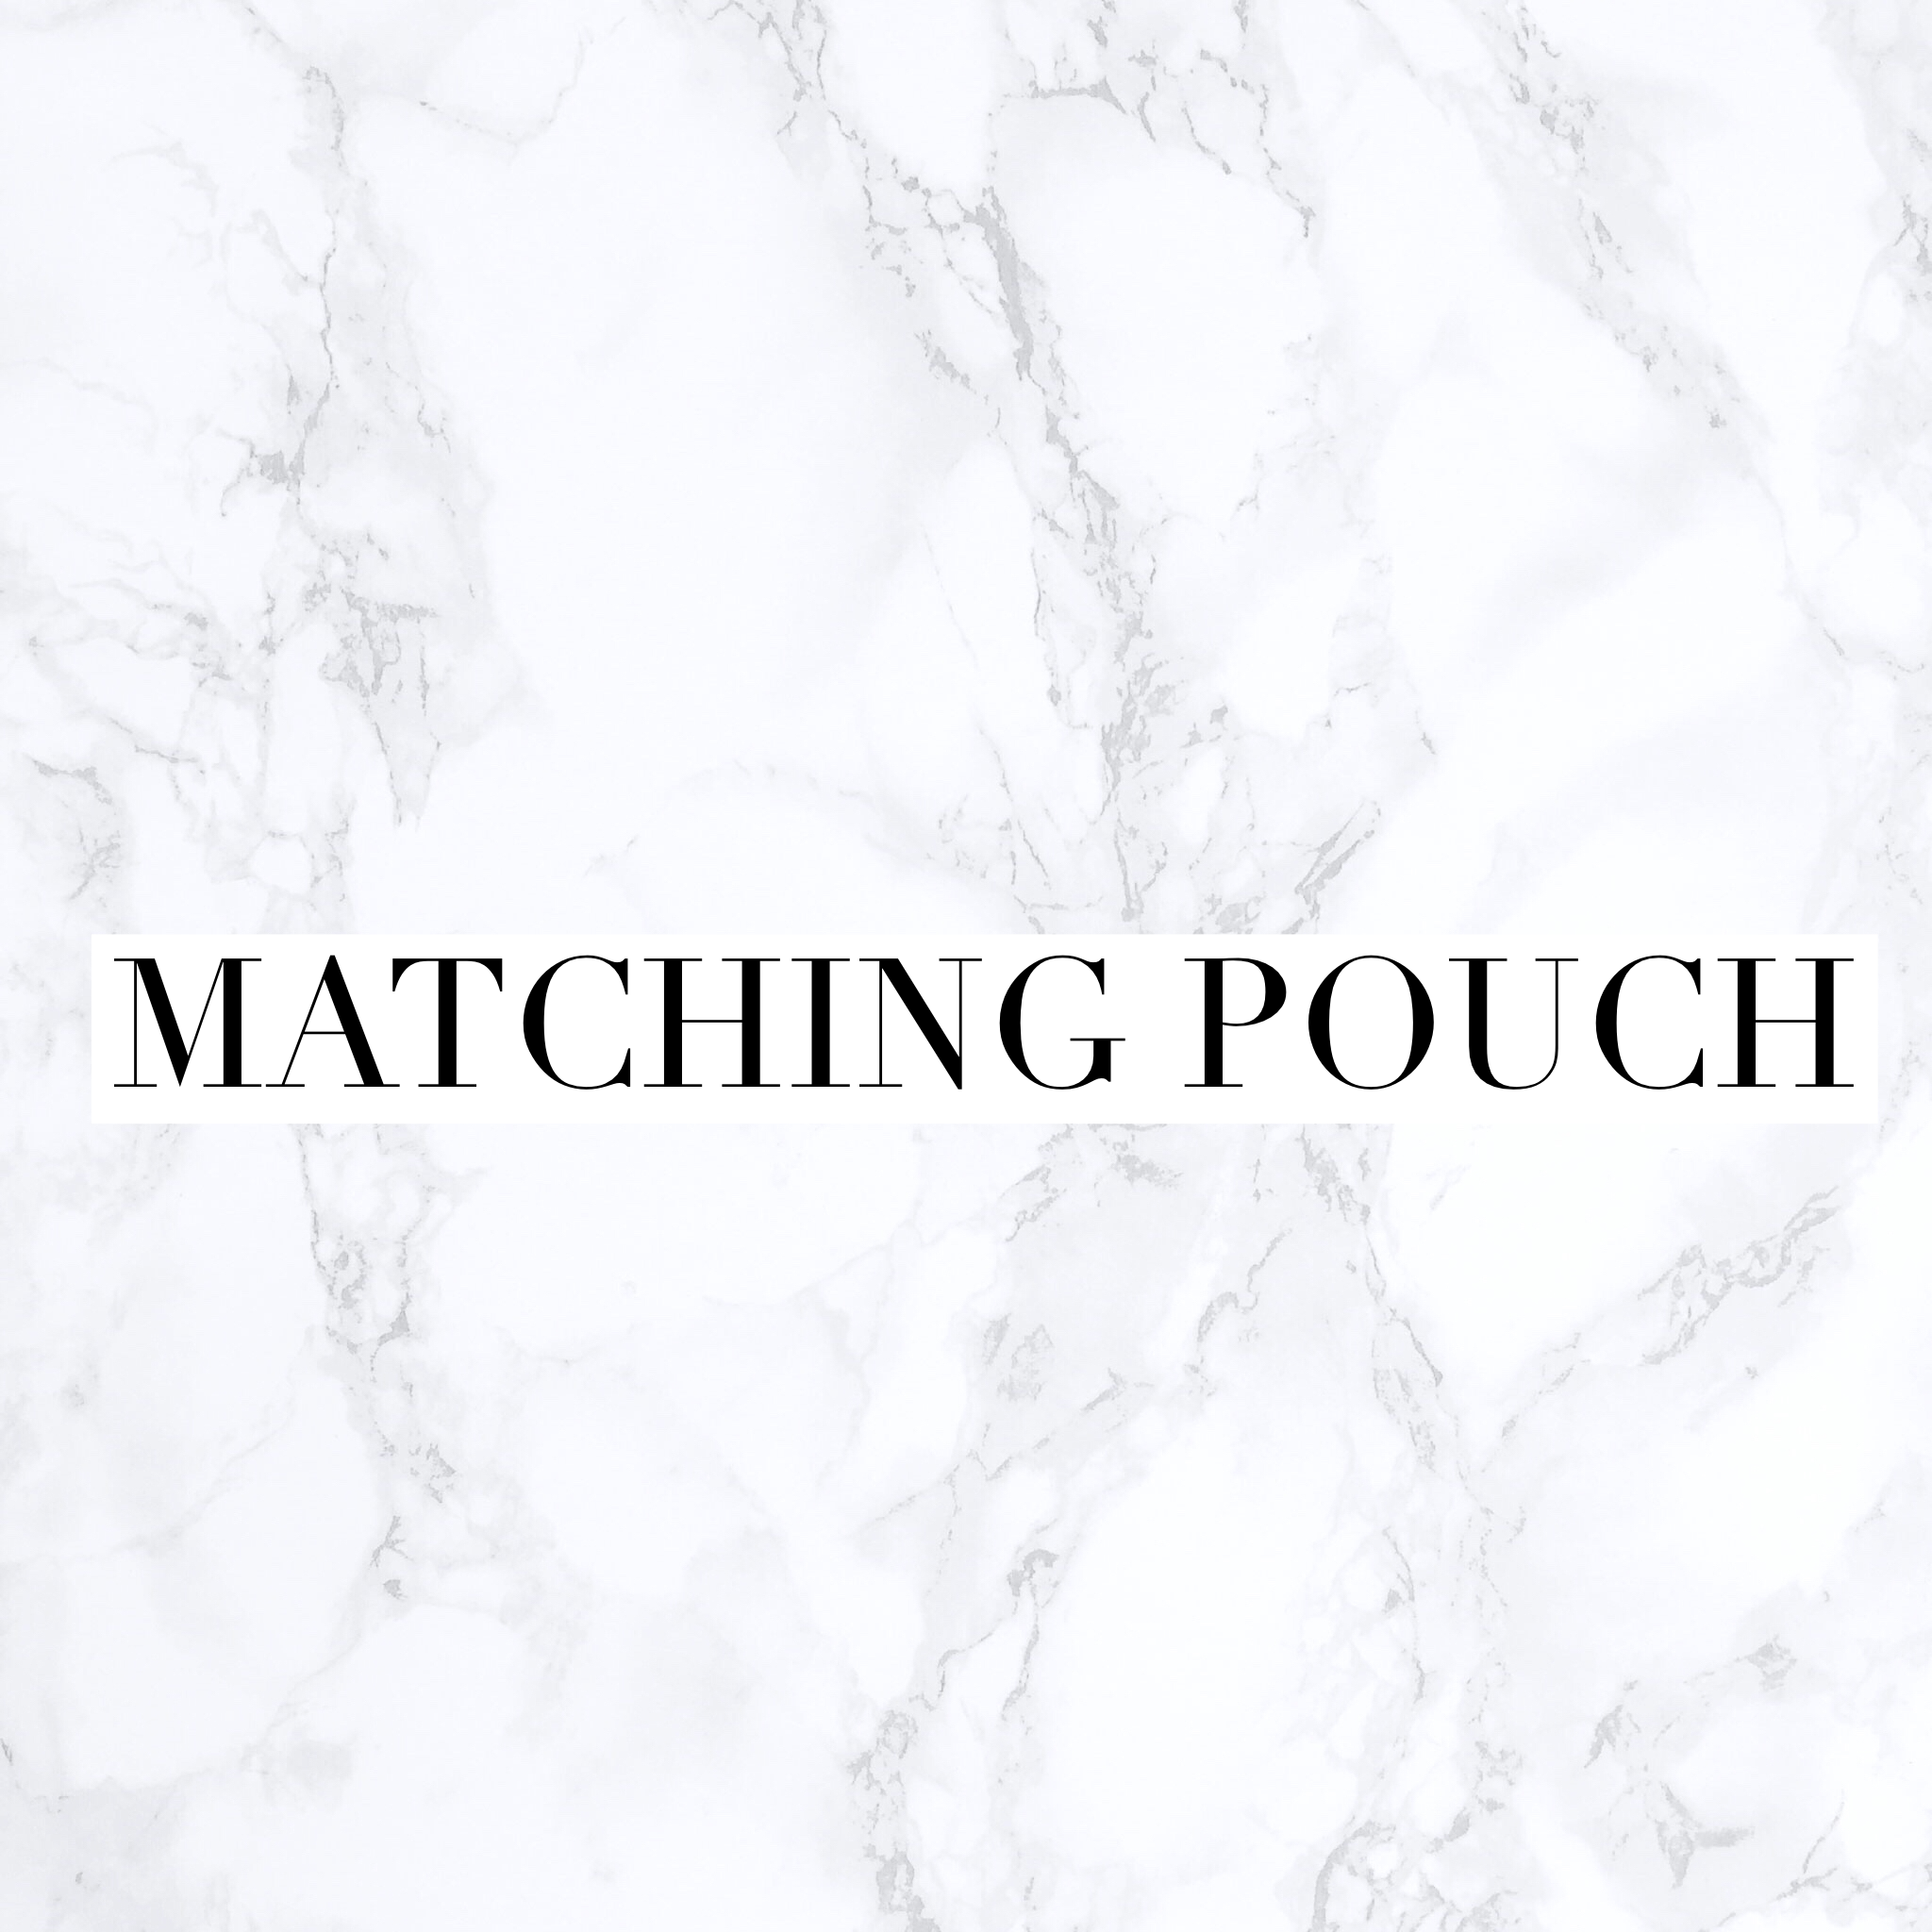 matchingpouch-white